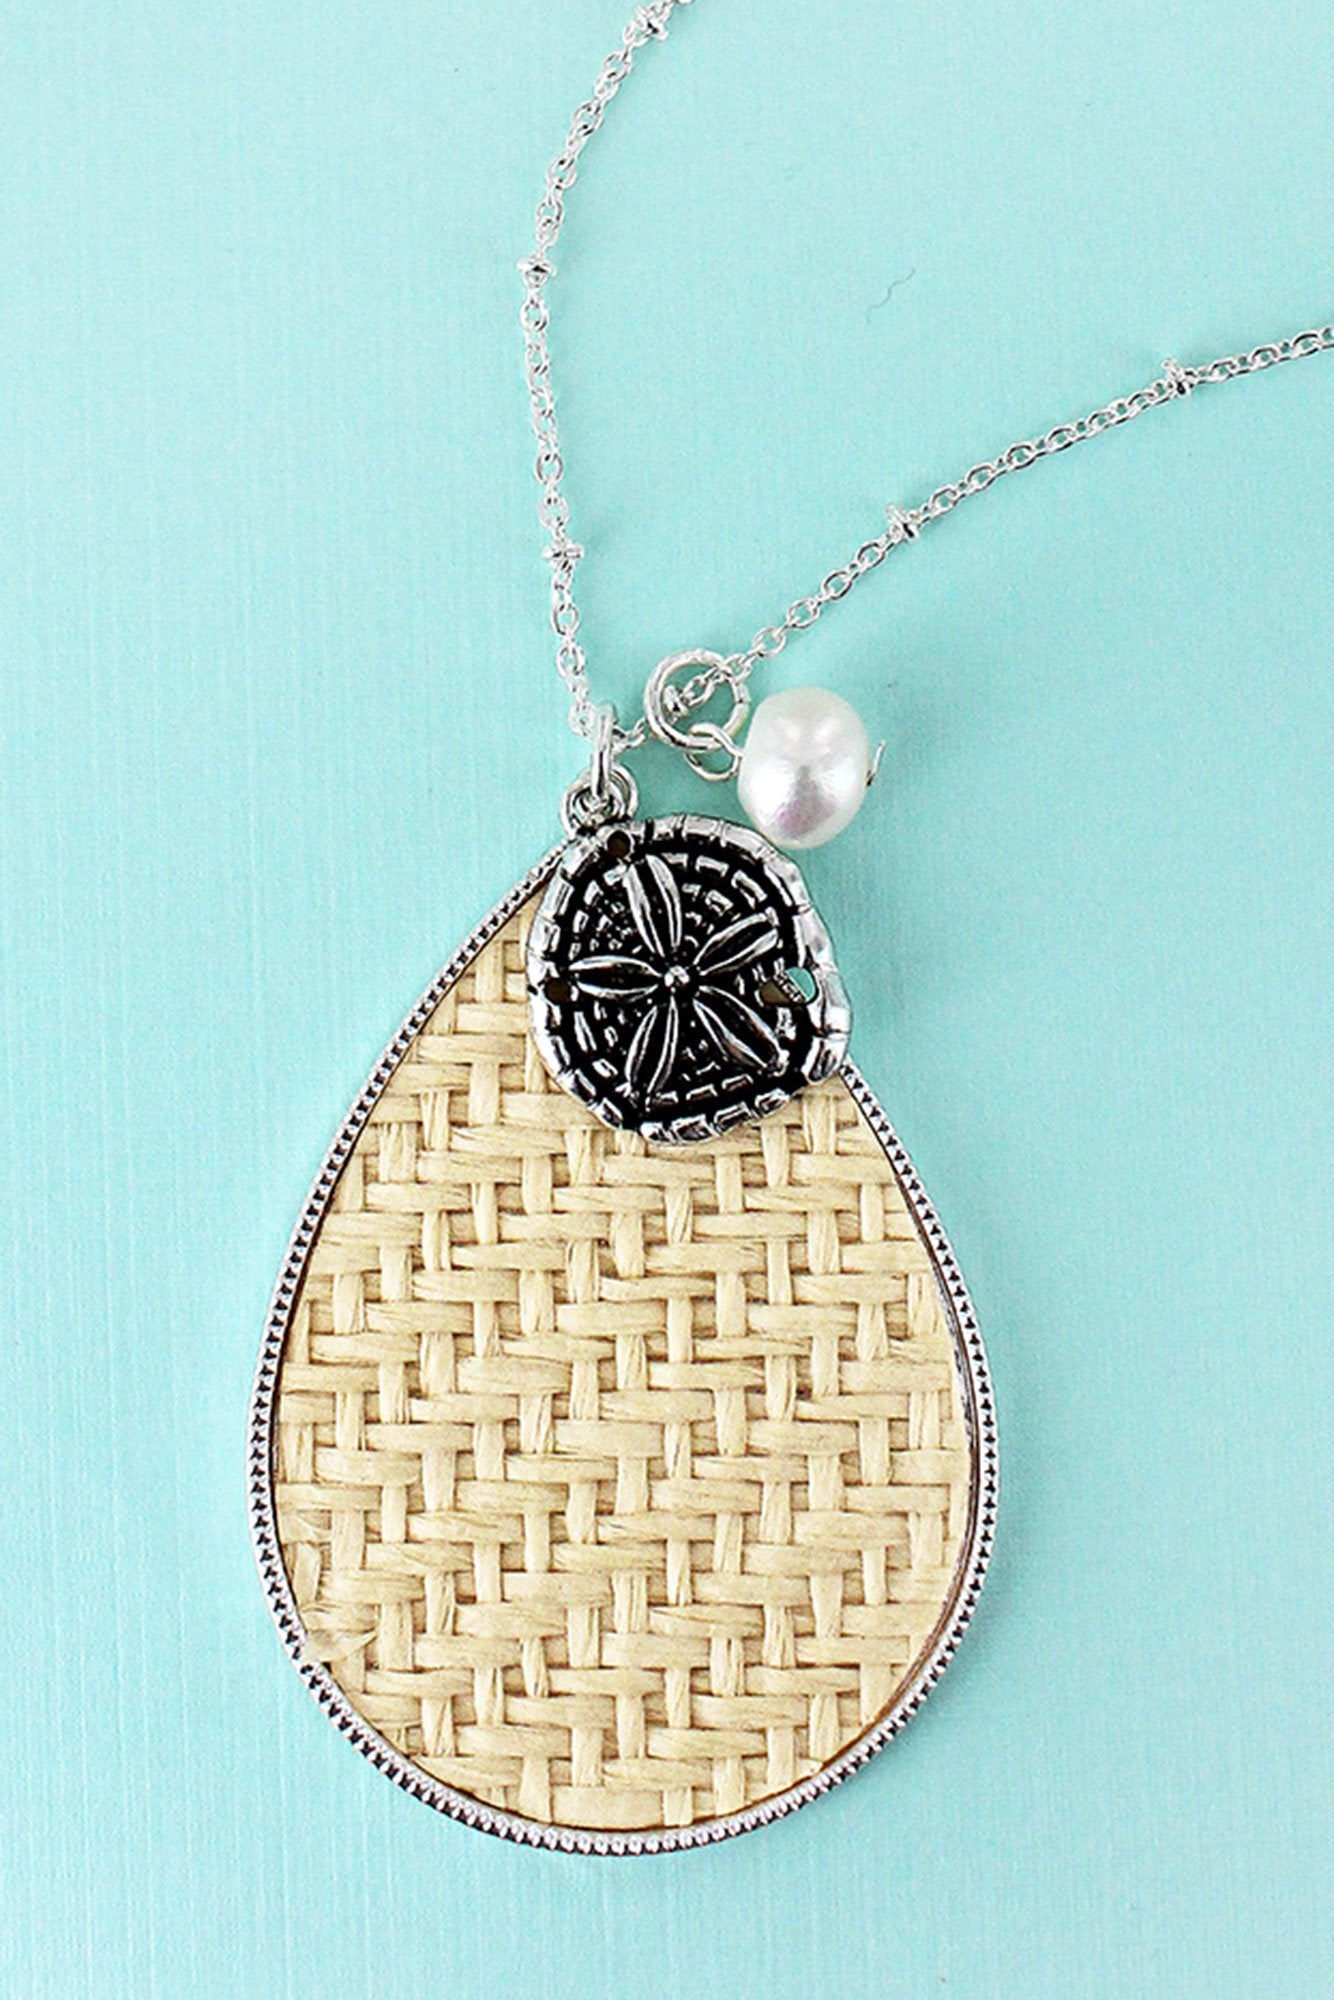 Ivory Rattan Teardrop with Silvertone Sand Dollar Pendant Necklace